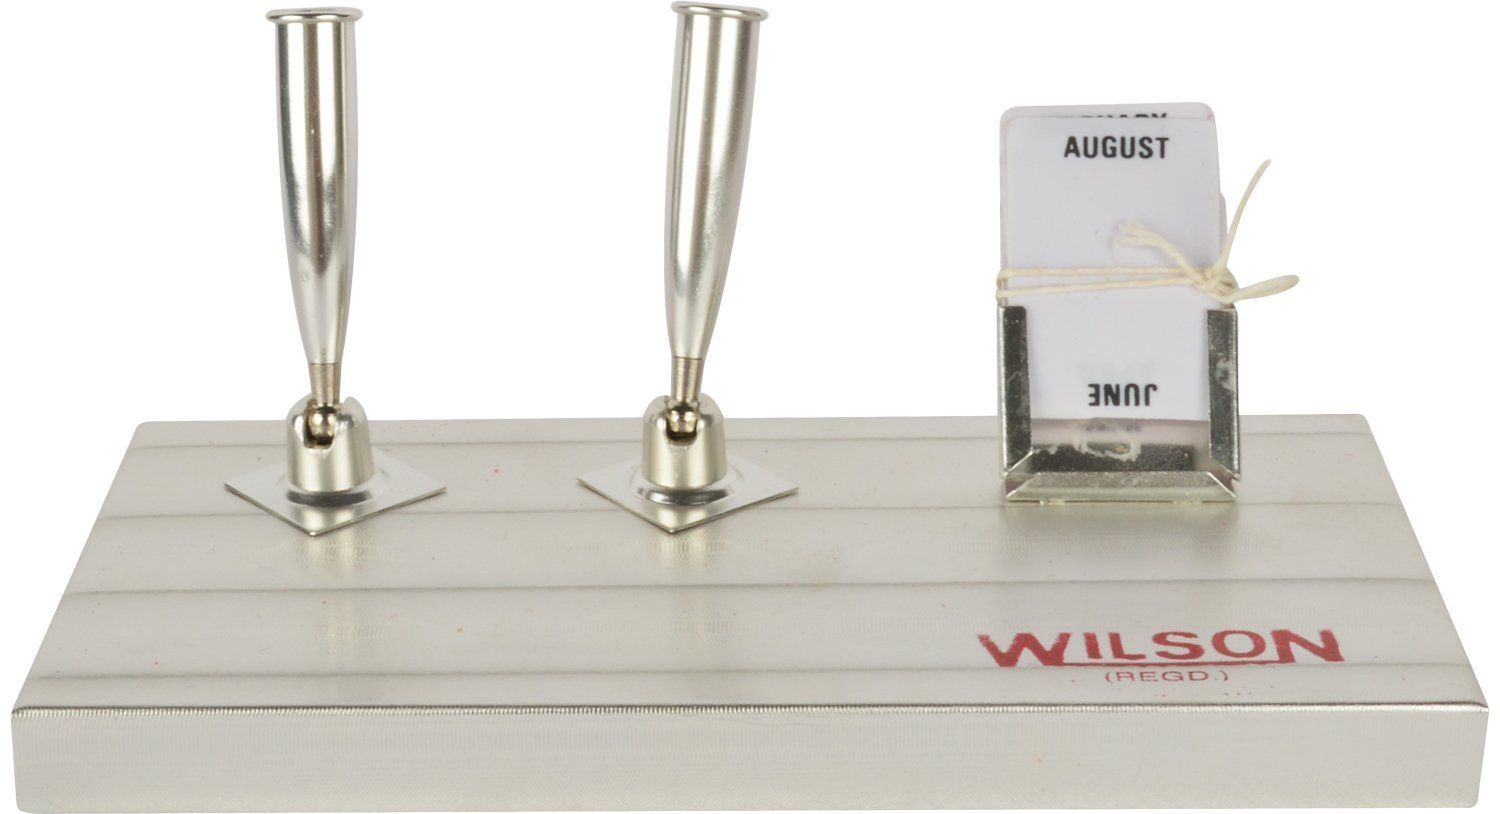 Wilson Pen Stand, 8 Inches X 5 Inches X 2 Inches: Amazon: Office Products